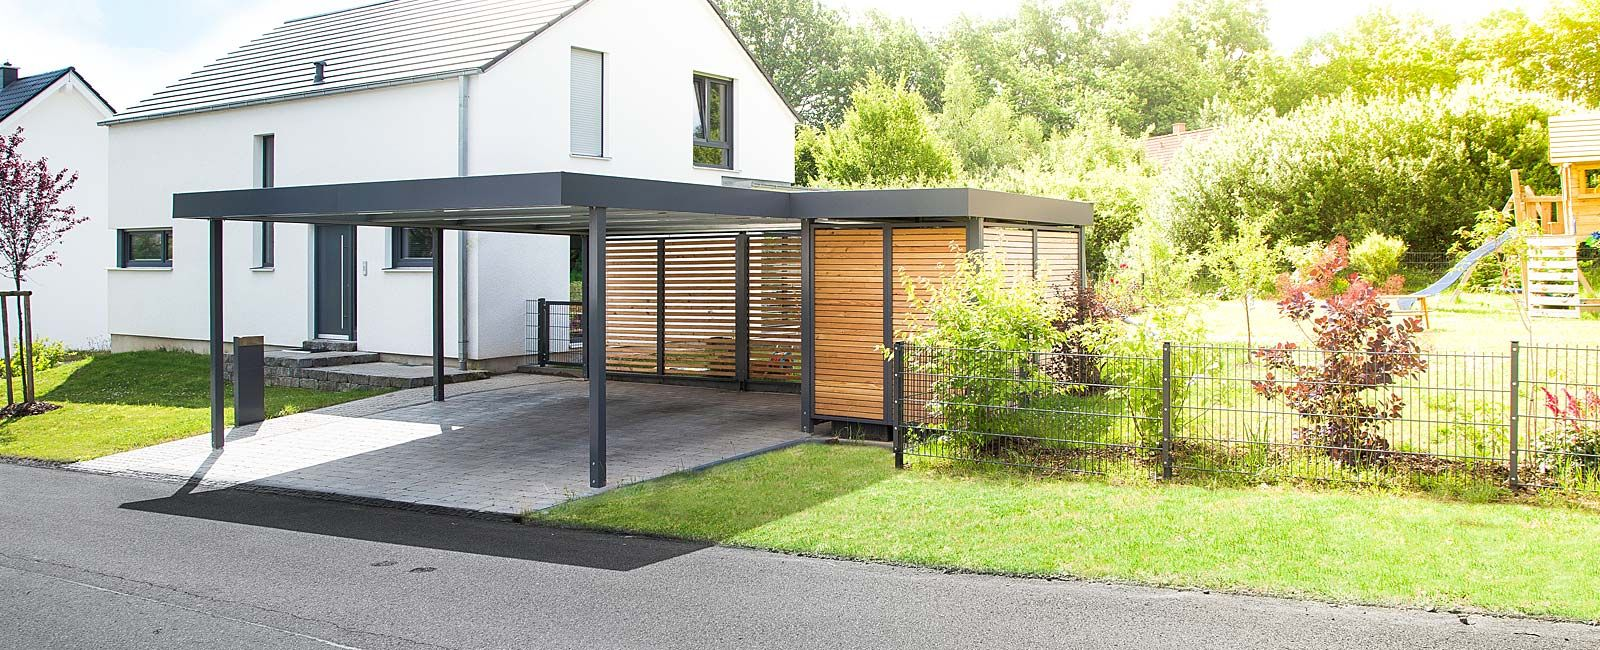 carport carport garage ger teh user von siebau carport garage pinterest au enterasse. Black Bedroom Furniture Sets. Home Design Ideas